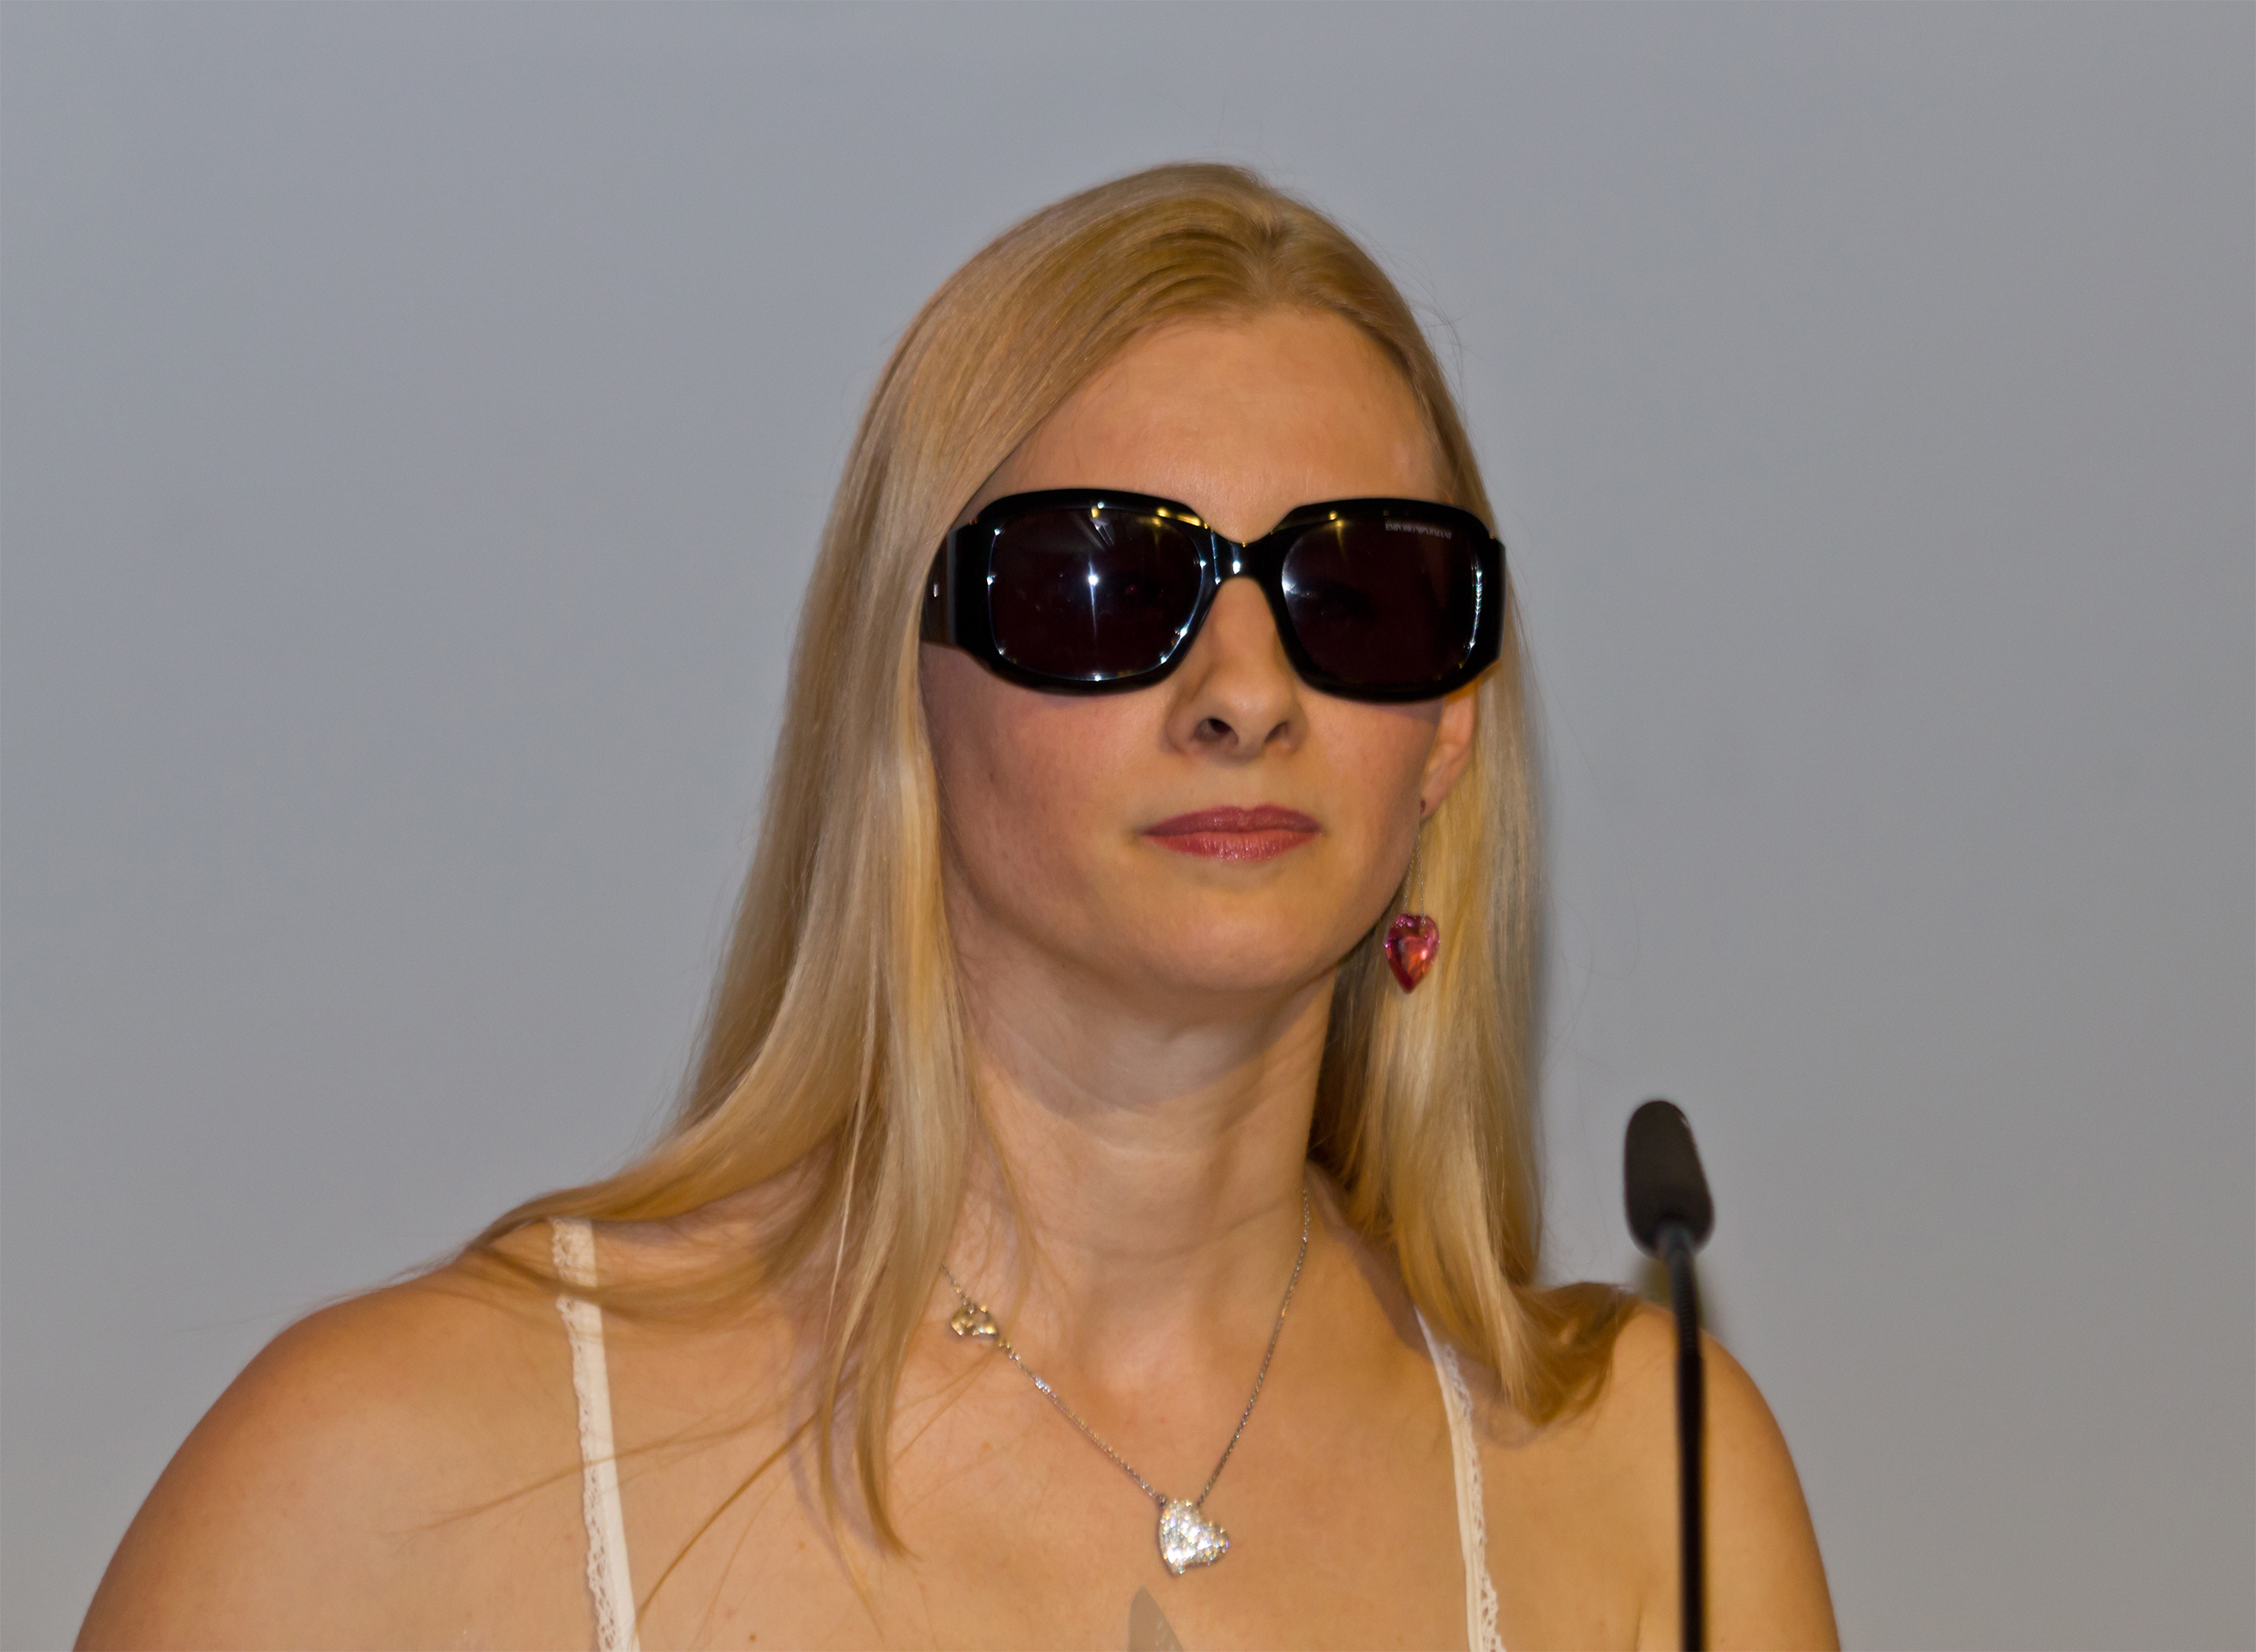 The 35-year old daughter of father (?) and mother(?) Joana Zimmer in 2018 photo. Joana Zimmer earned a  million dollar salary - leaving the net worth at 3 million in 2018